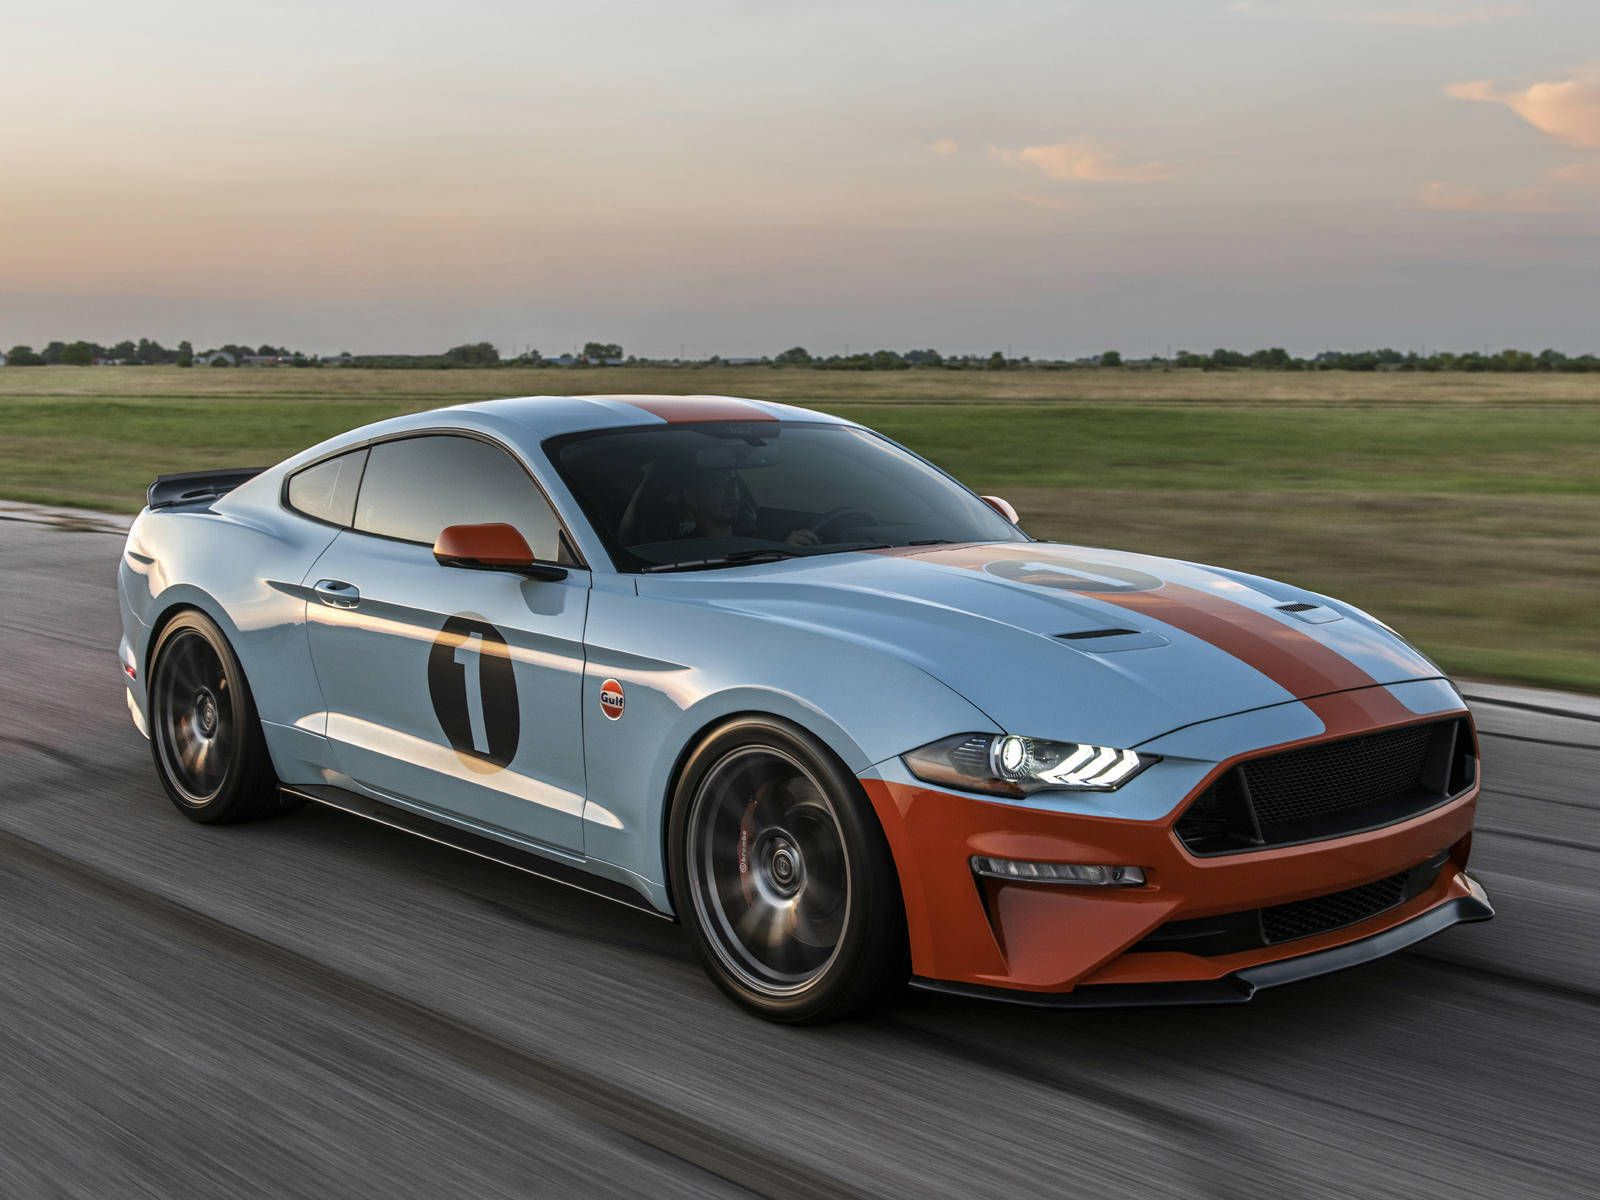 Is This 808 Hp Ford Mustang Is The Most Expensive Car Ford Mustang Mustang Ford